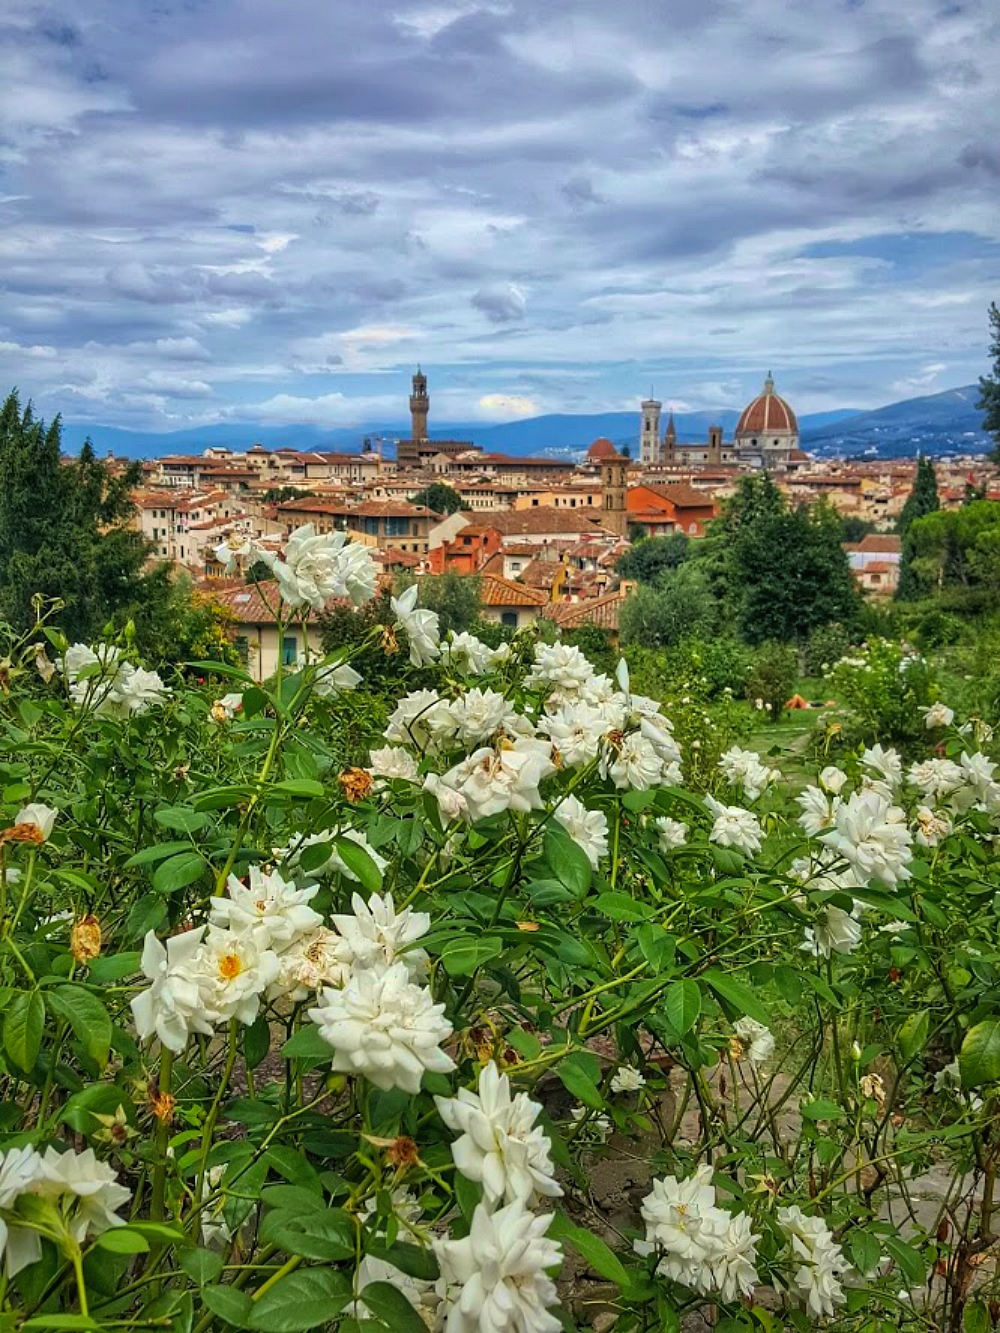 View of Florence Tuscany from Giardino Delle Rosse.